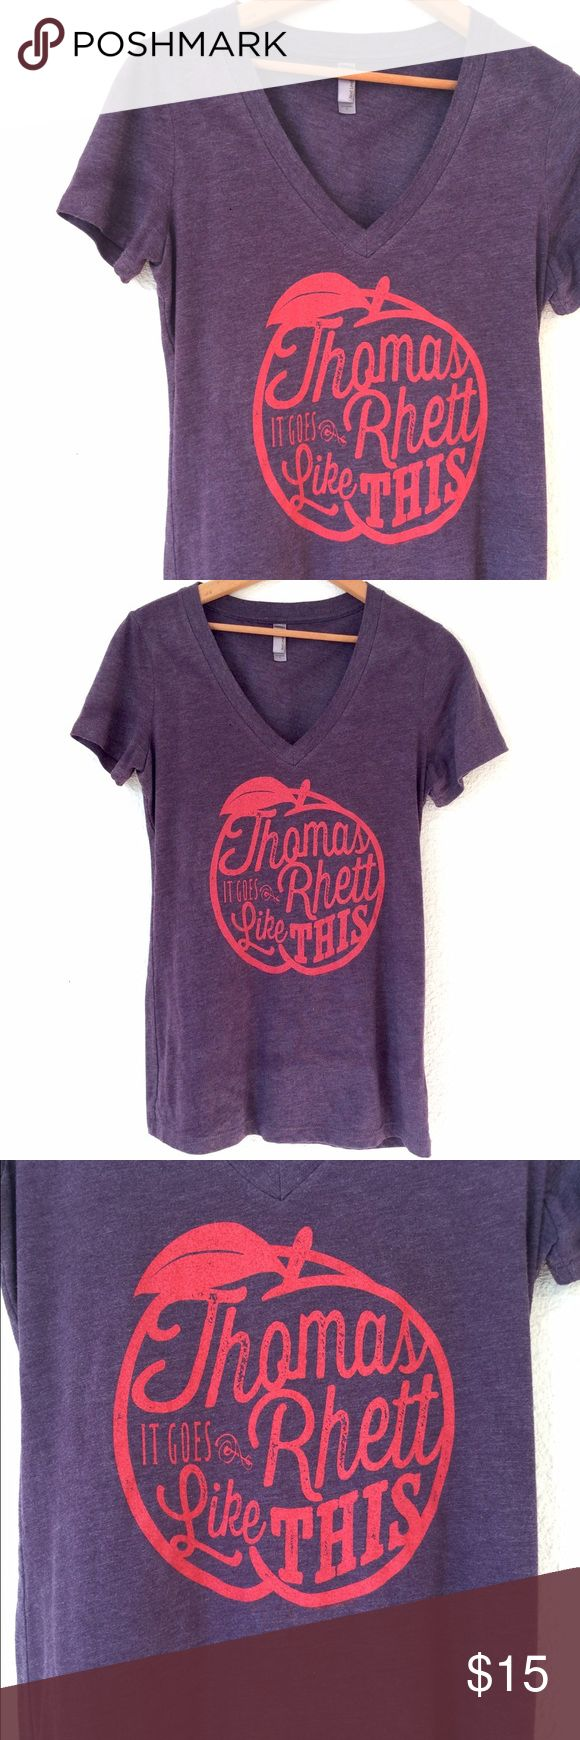 Thomas Rhett Concert T-shirt In excellent condition, purchased from Thomas Rhett concert and only wore a few times. Vintage feel, v-neck, size large, semi-fitted. Tops Tees - Short Sleeve